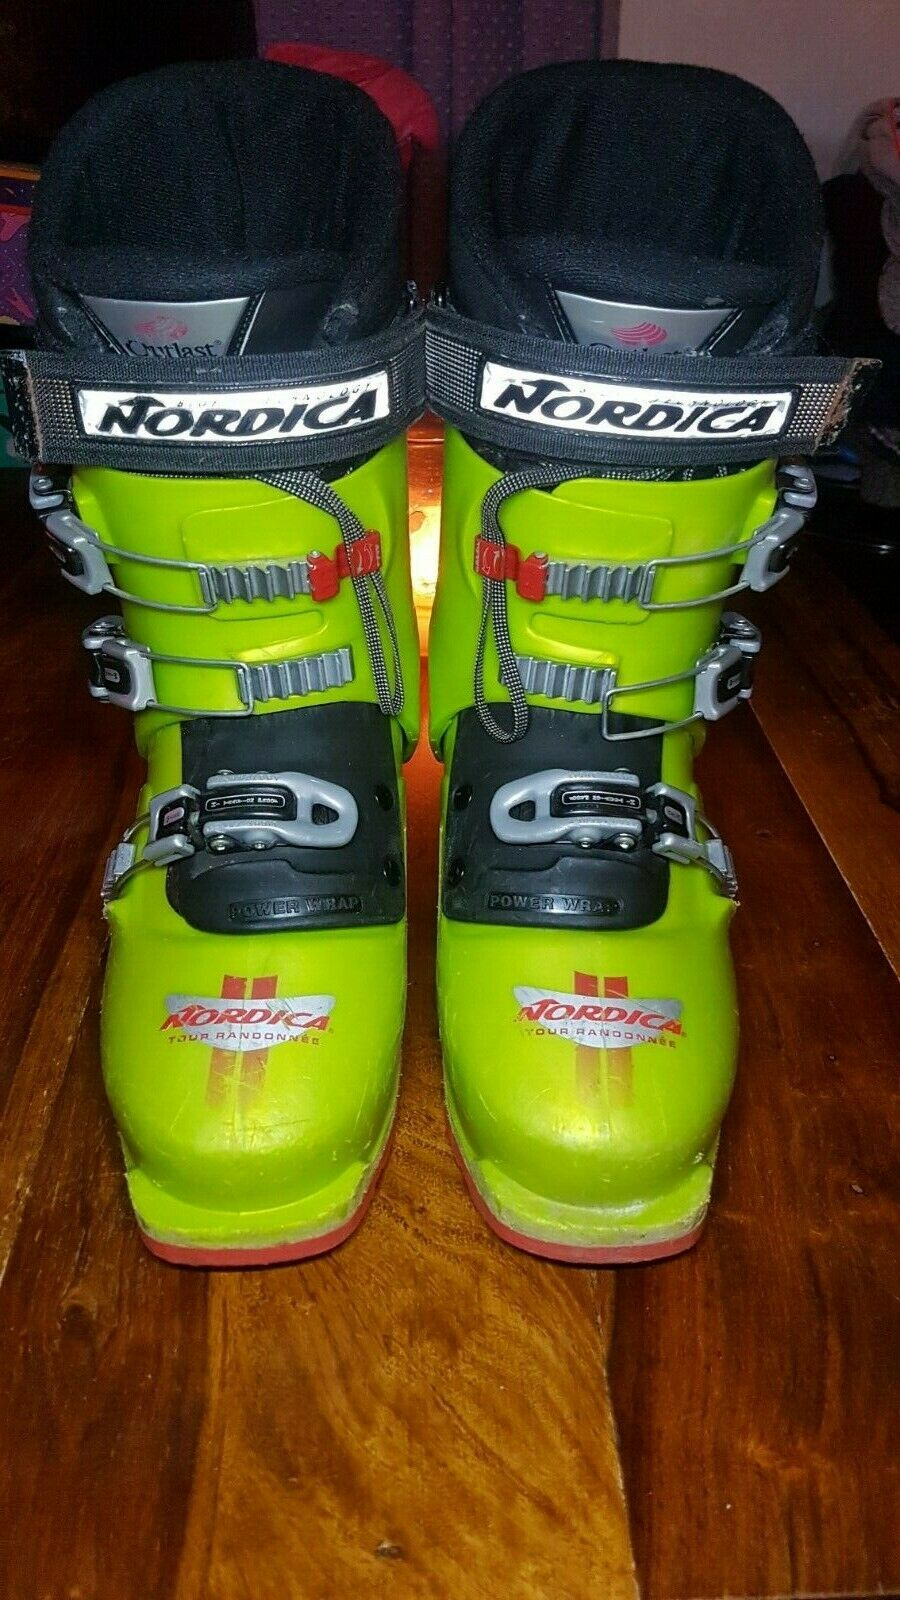 Size 8/9 Nordica Ski touring/hiking boots made in Italy Tr 12, tour randonee